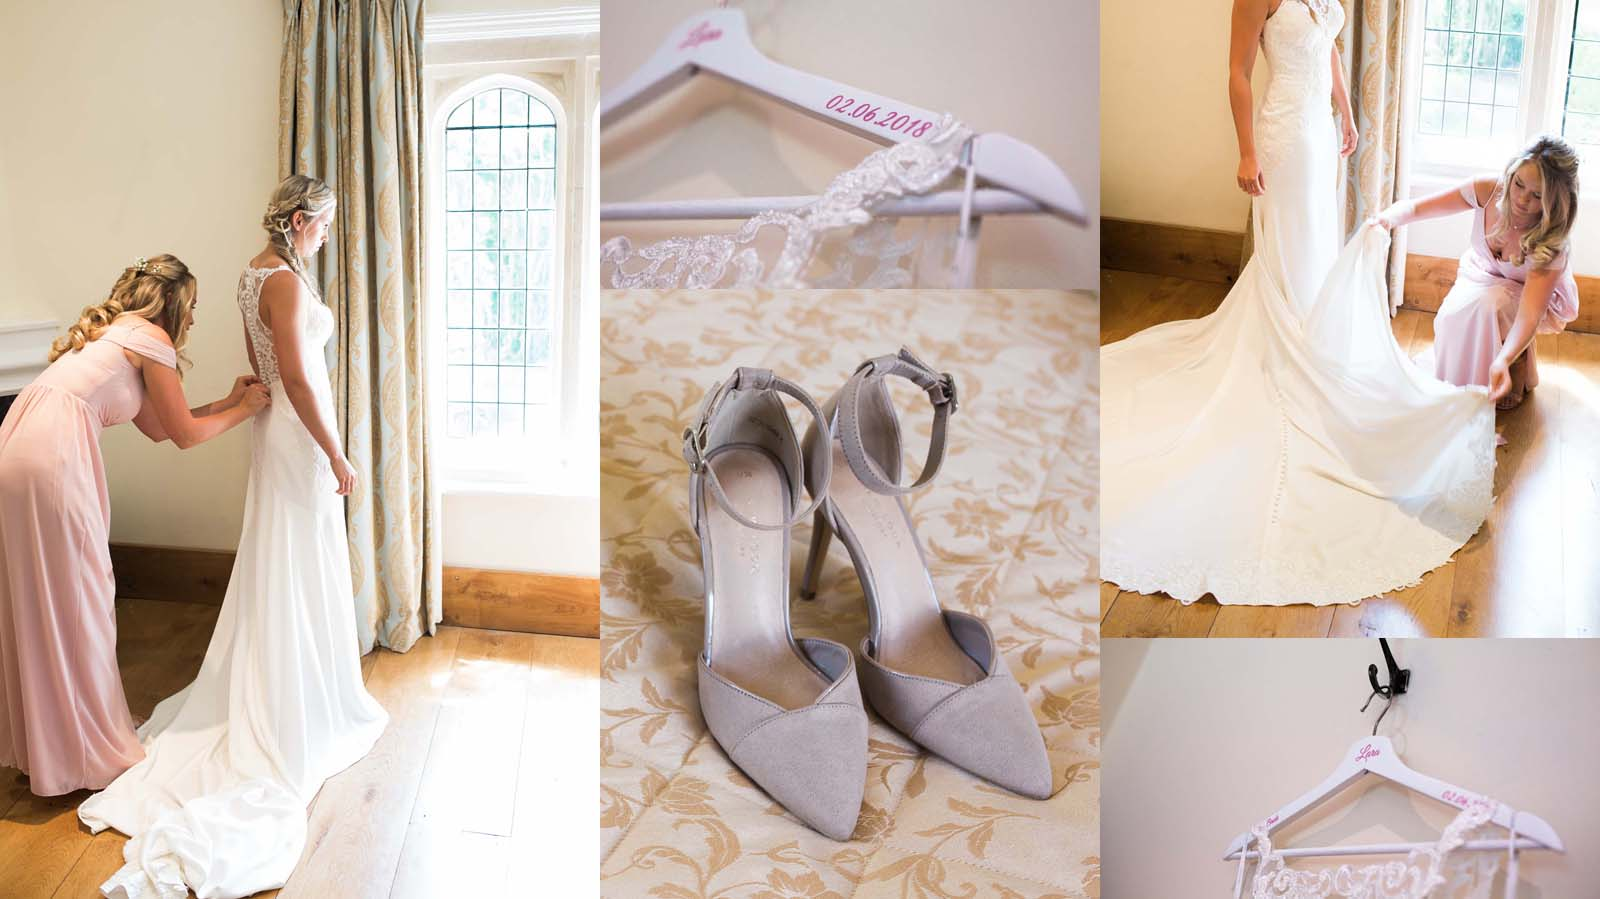 Notley Abbey wedding in Buckinghamshire - wedding collage